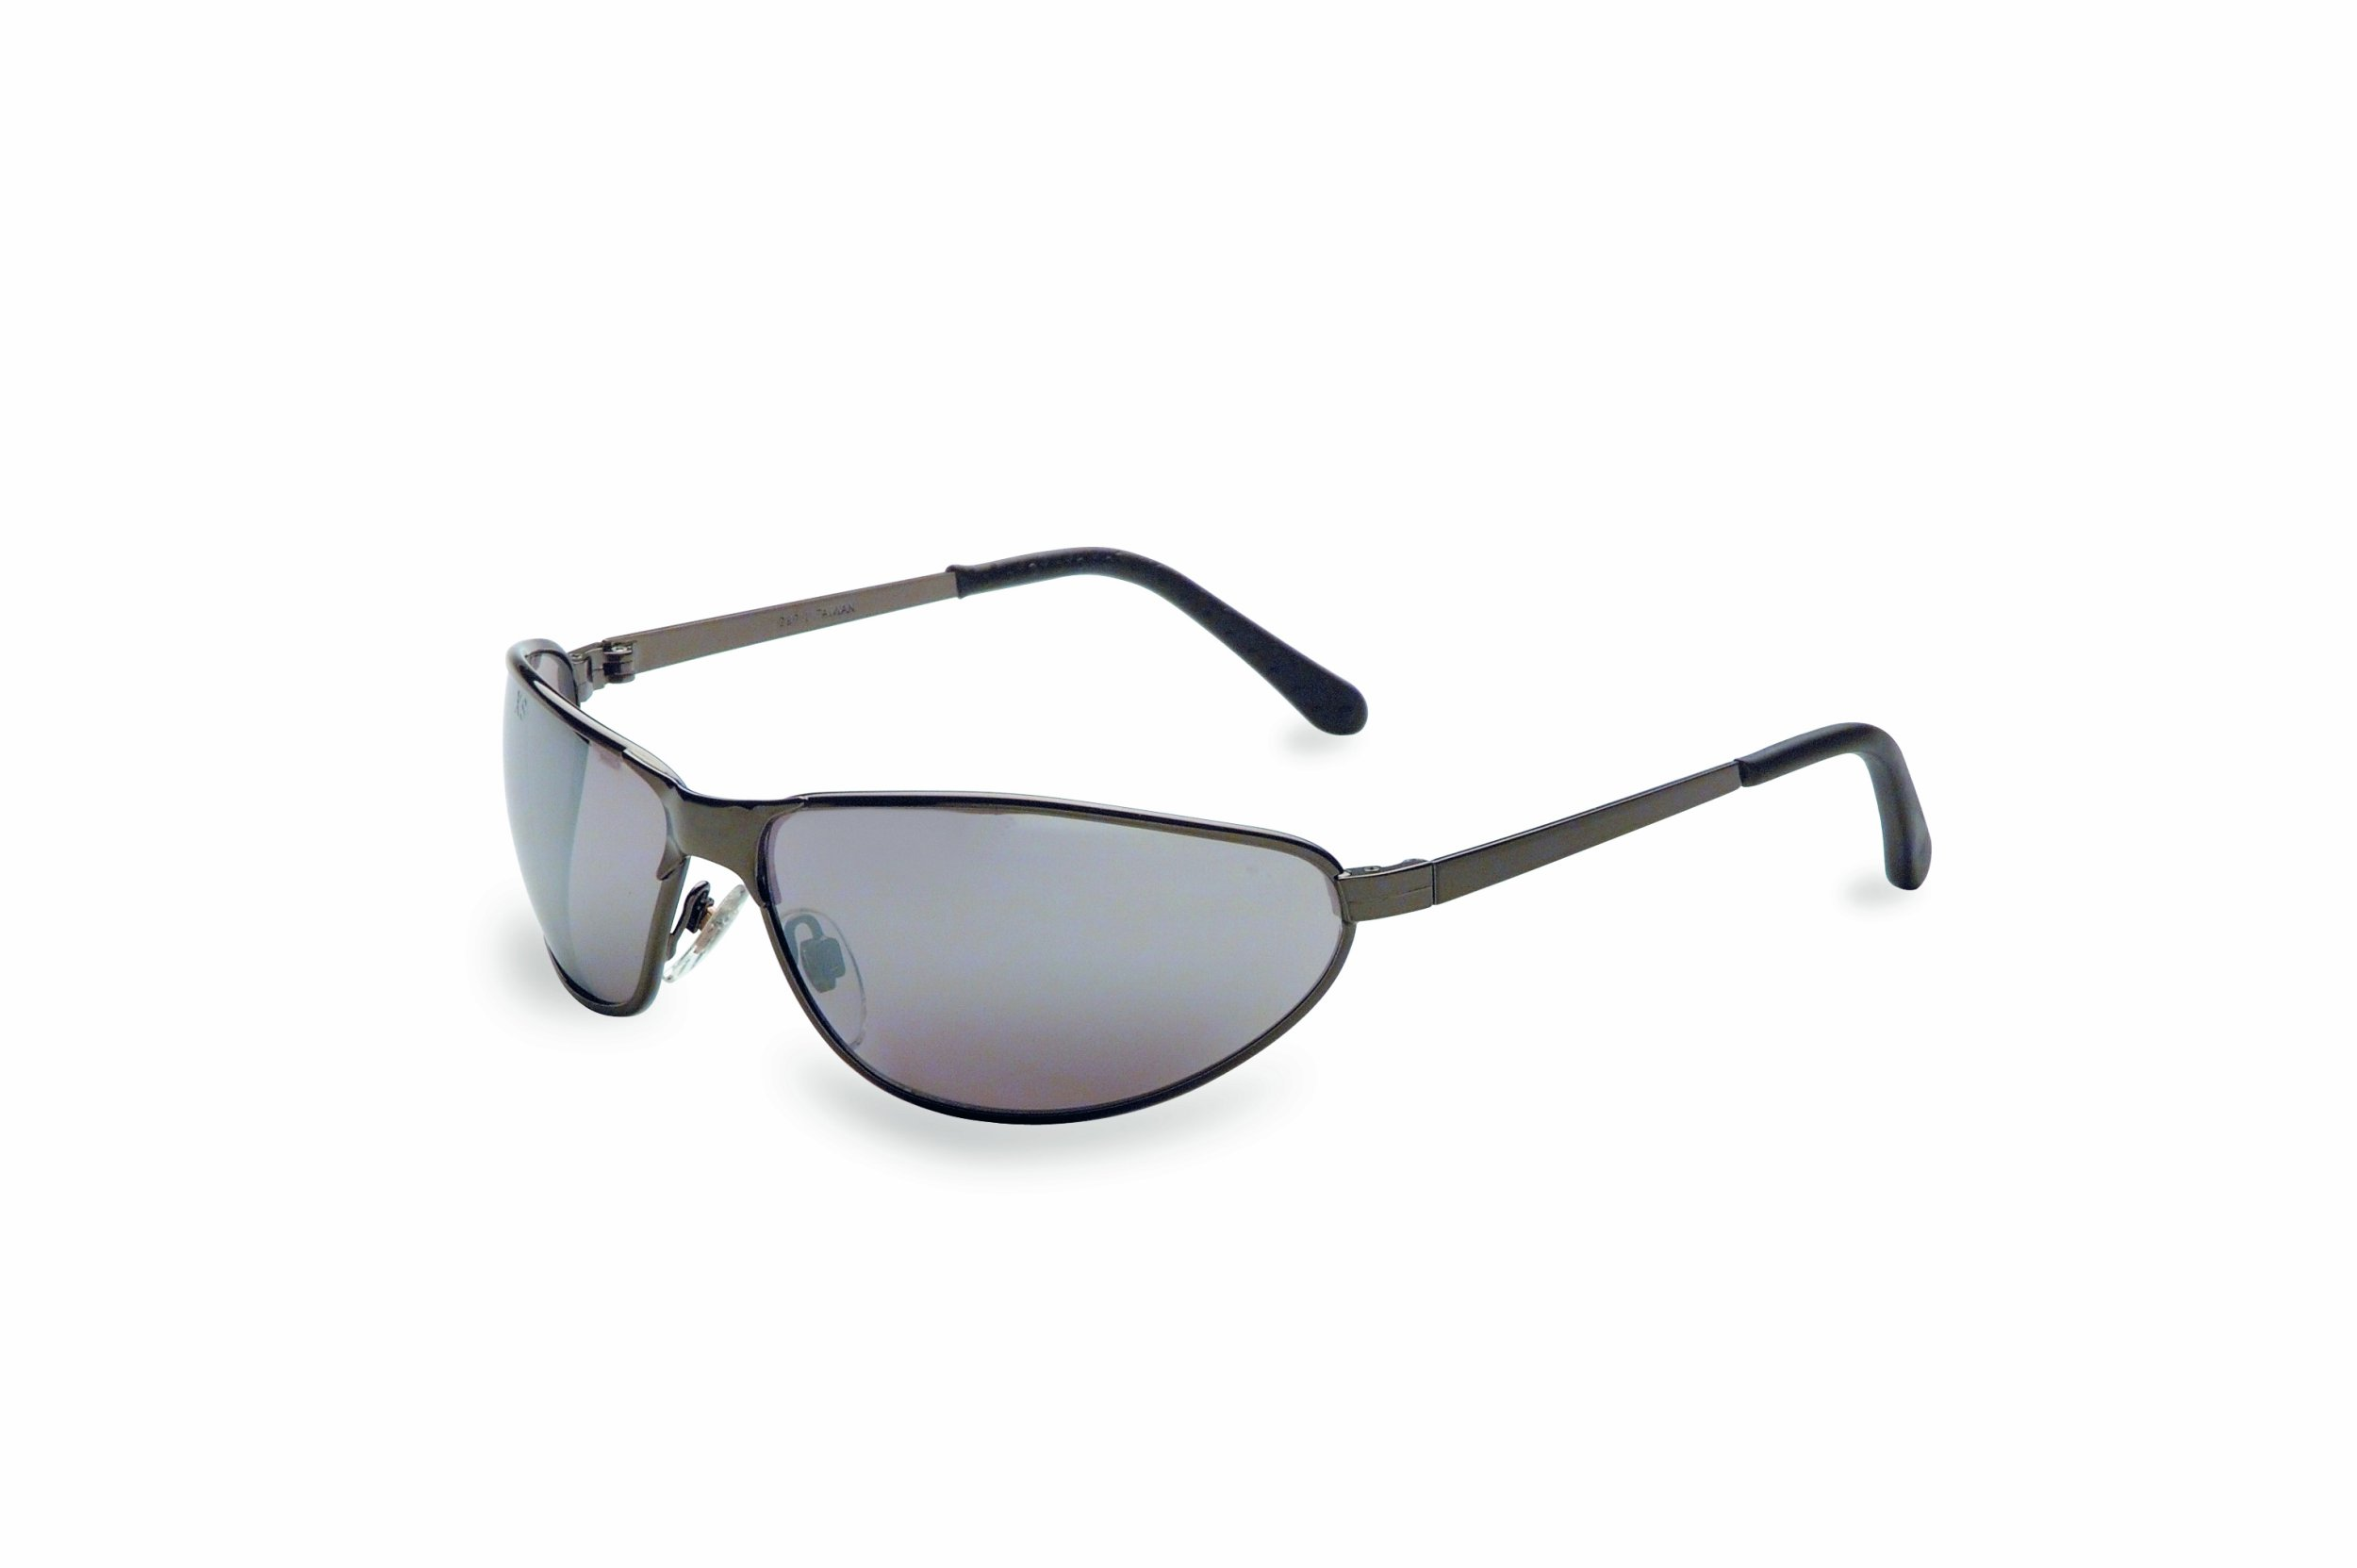 Honeywell Tomcat Metal Frame Tinted Safety Glasses, Gray Lens (RWS-51016)